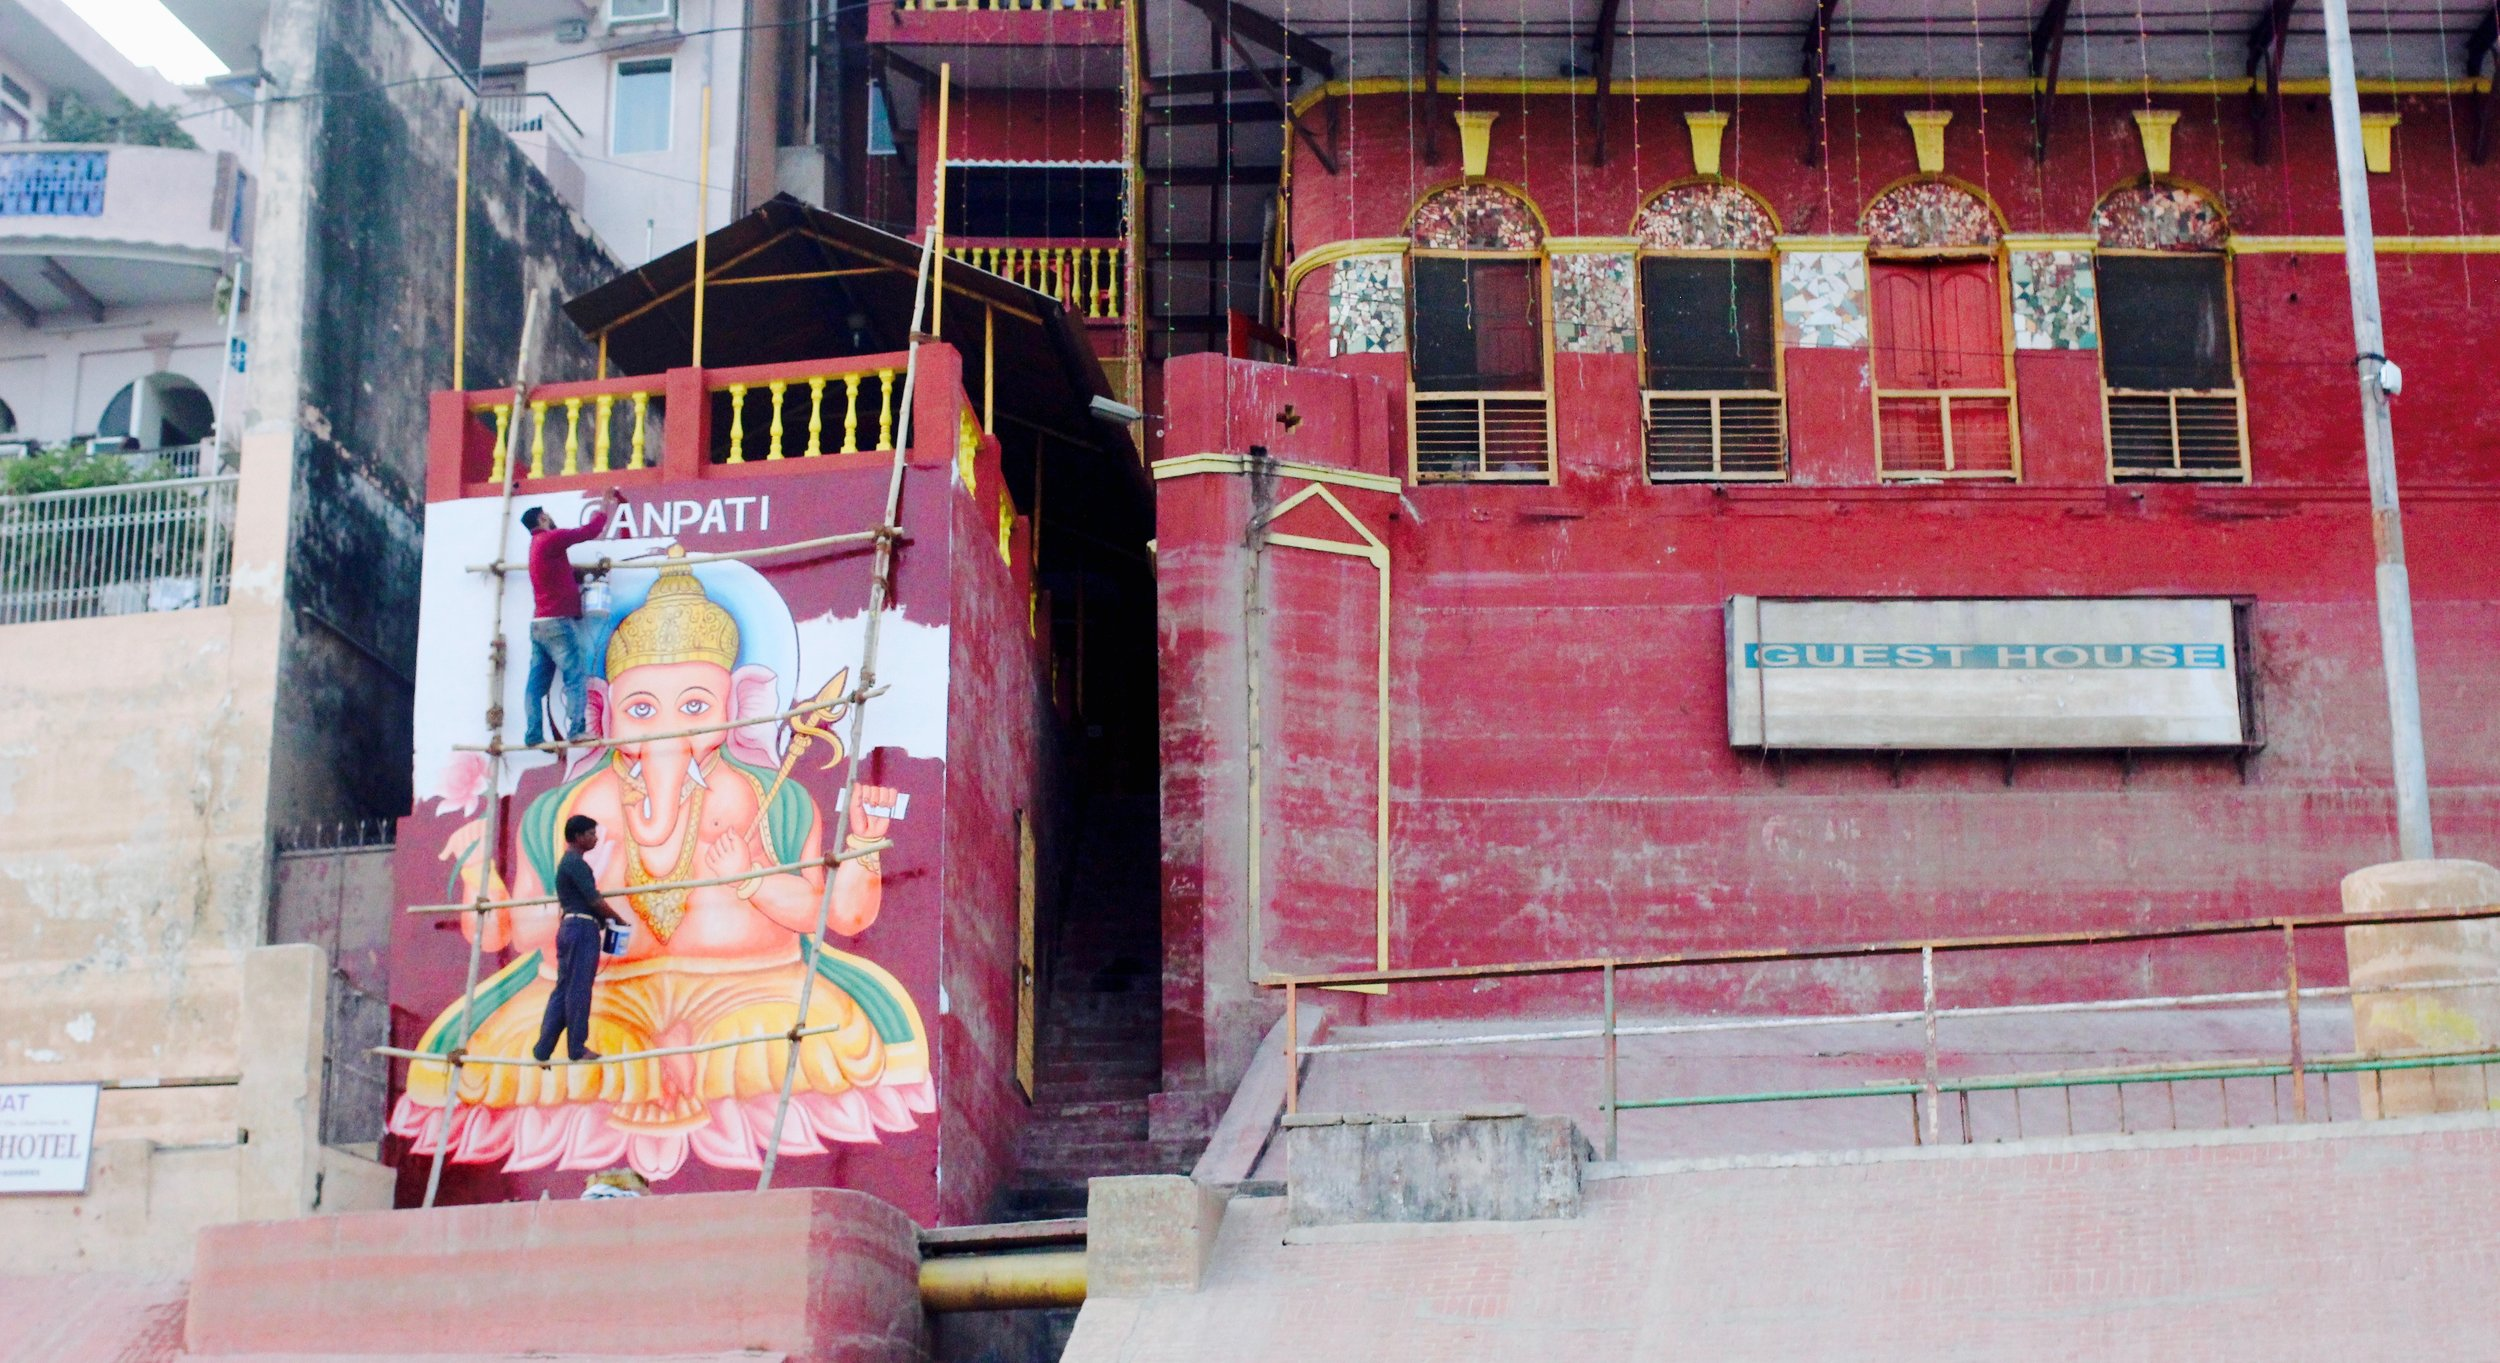 Images of Ganesha everywhere, the Hindi God worshipped on Diwali. They started painting that mural only yesterday.